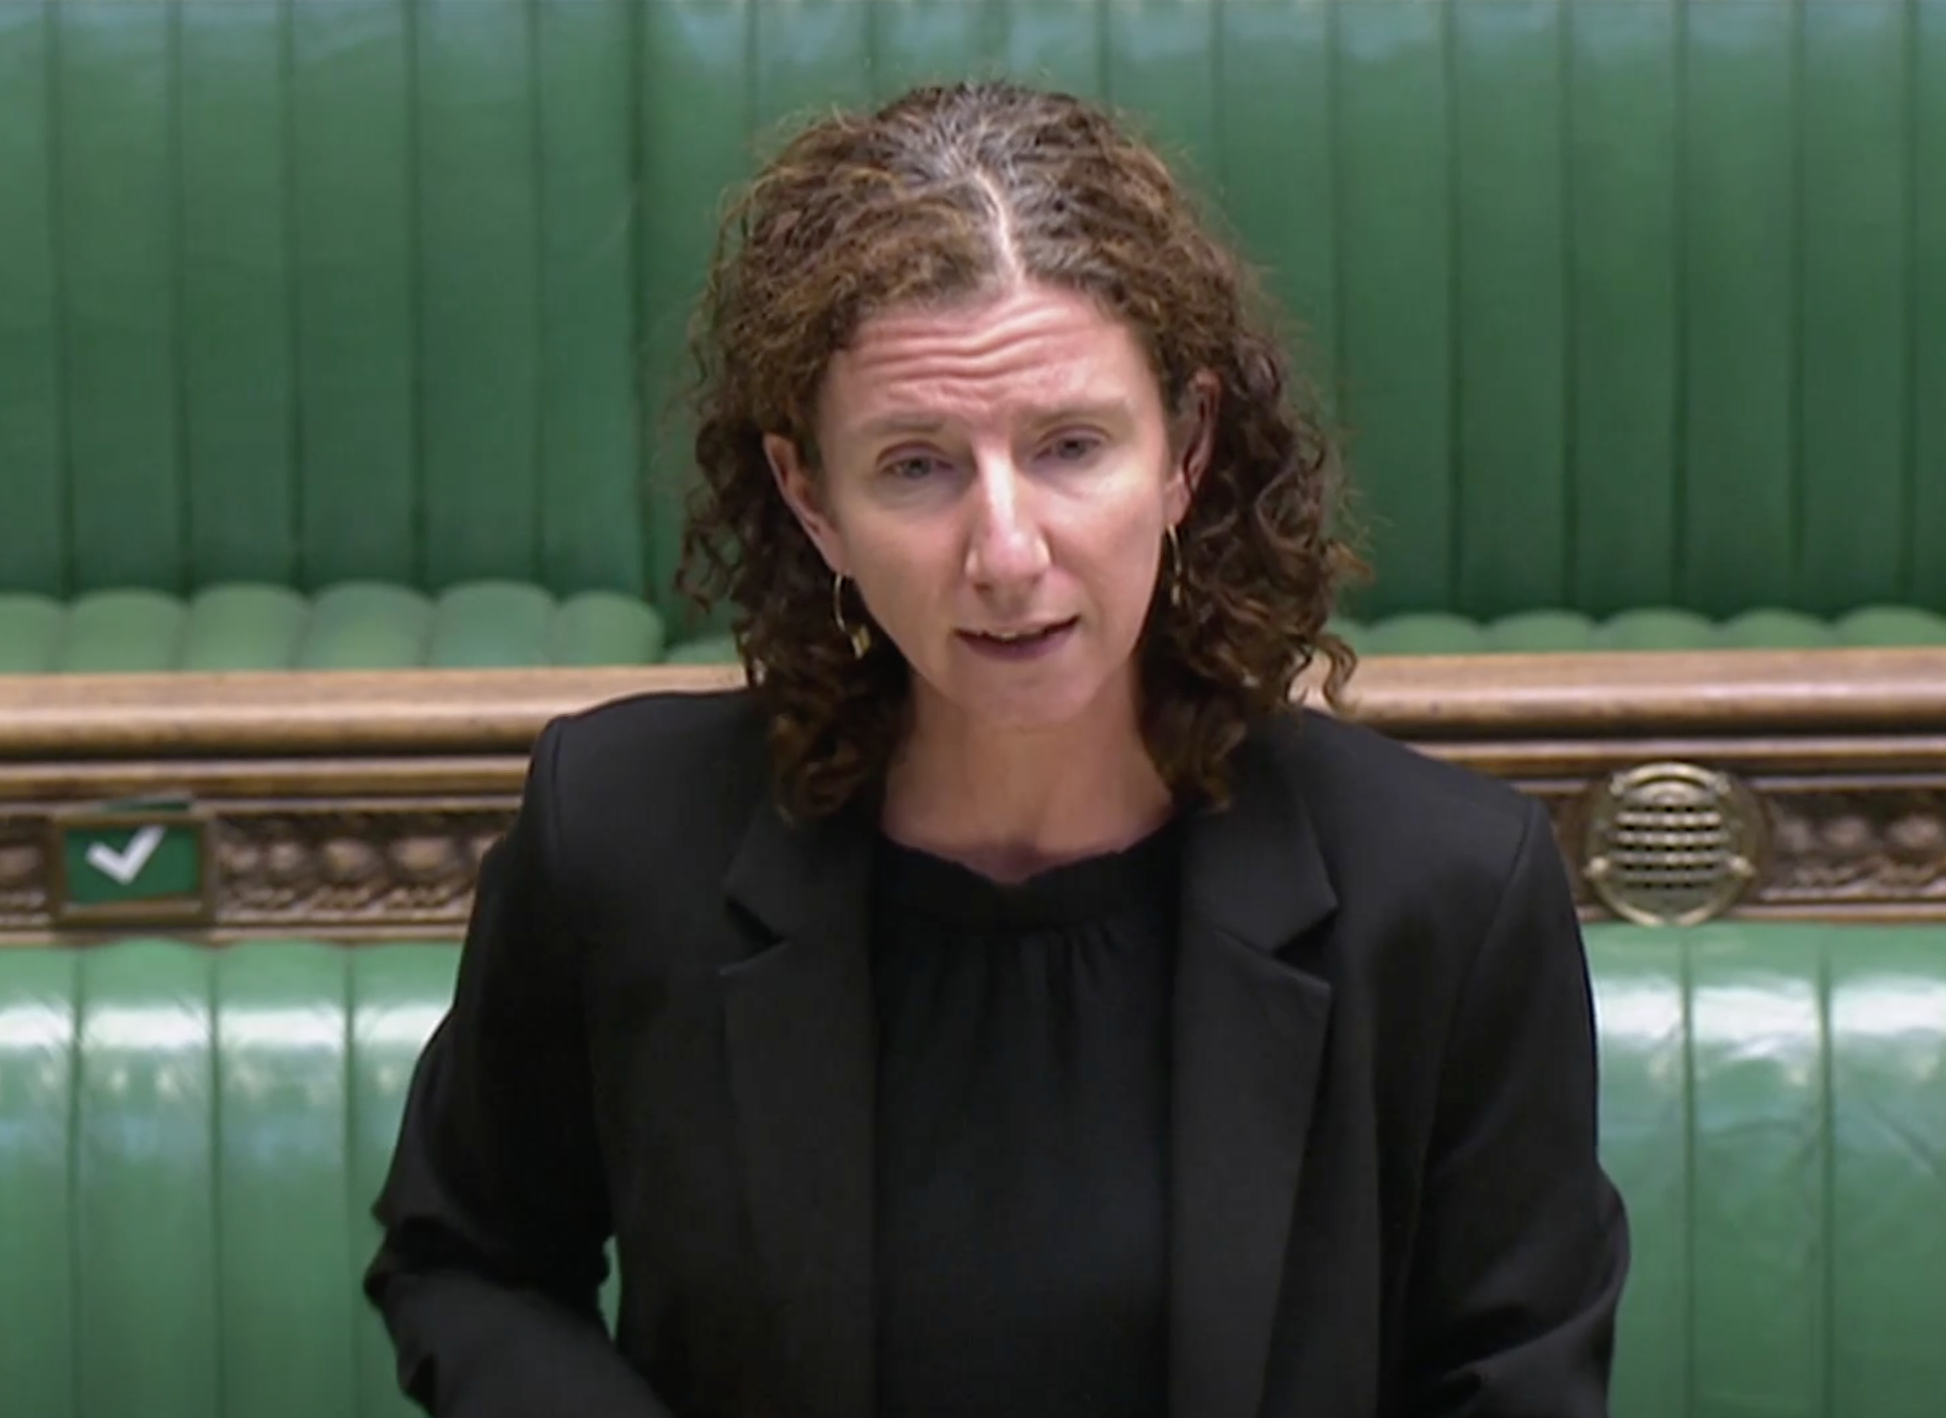 independent.co.uk - Andrew Woodcock - Labour ready to work 'hand in hand' with finance industry says Anneliese Dodds in charm offensive on City